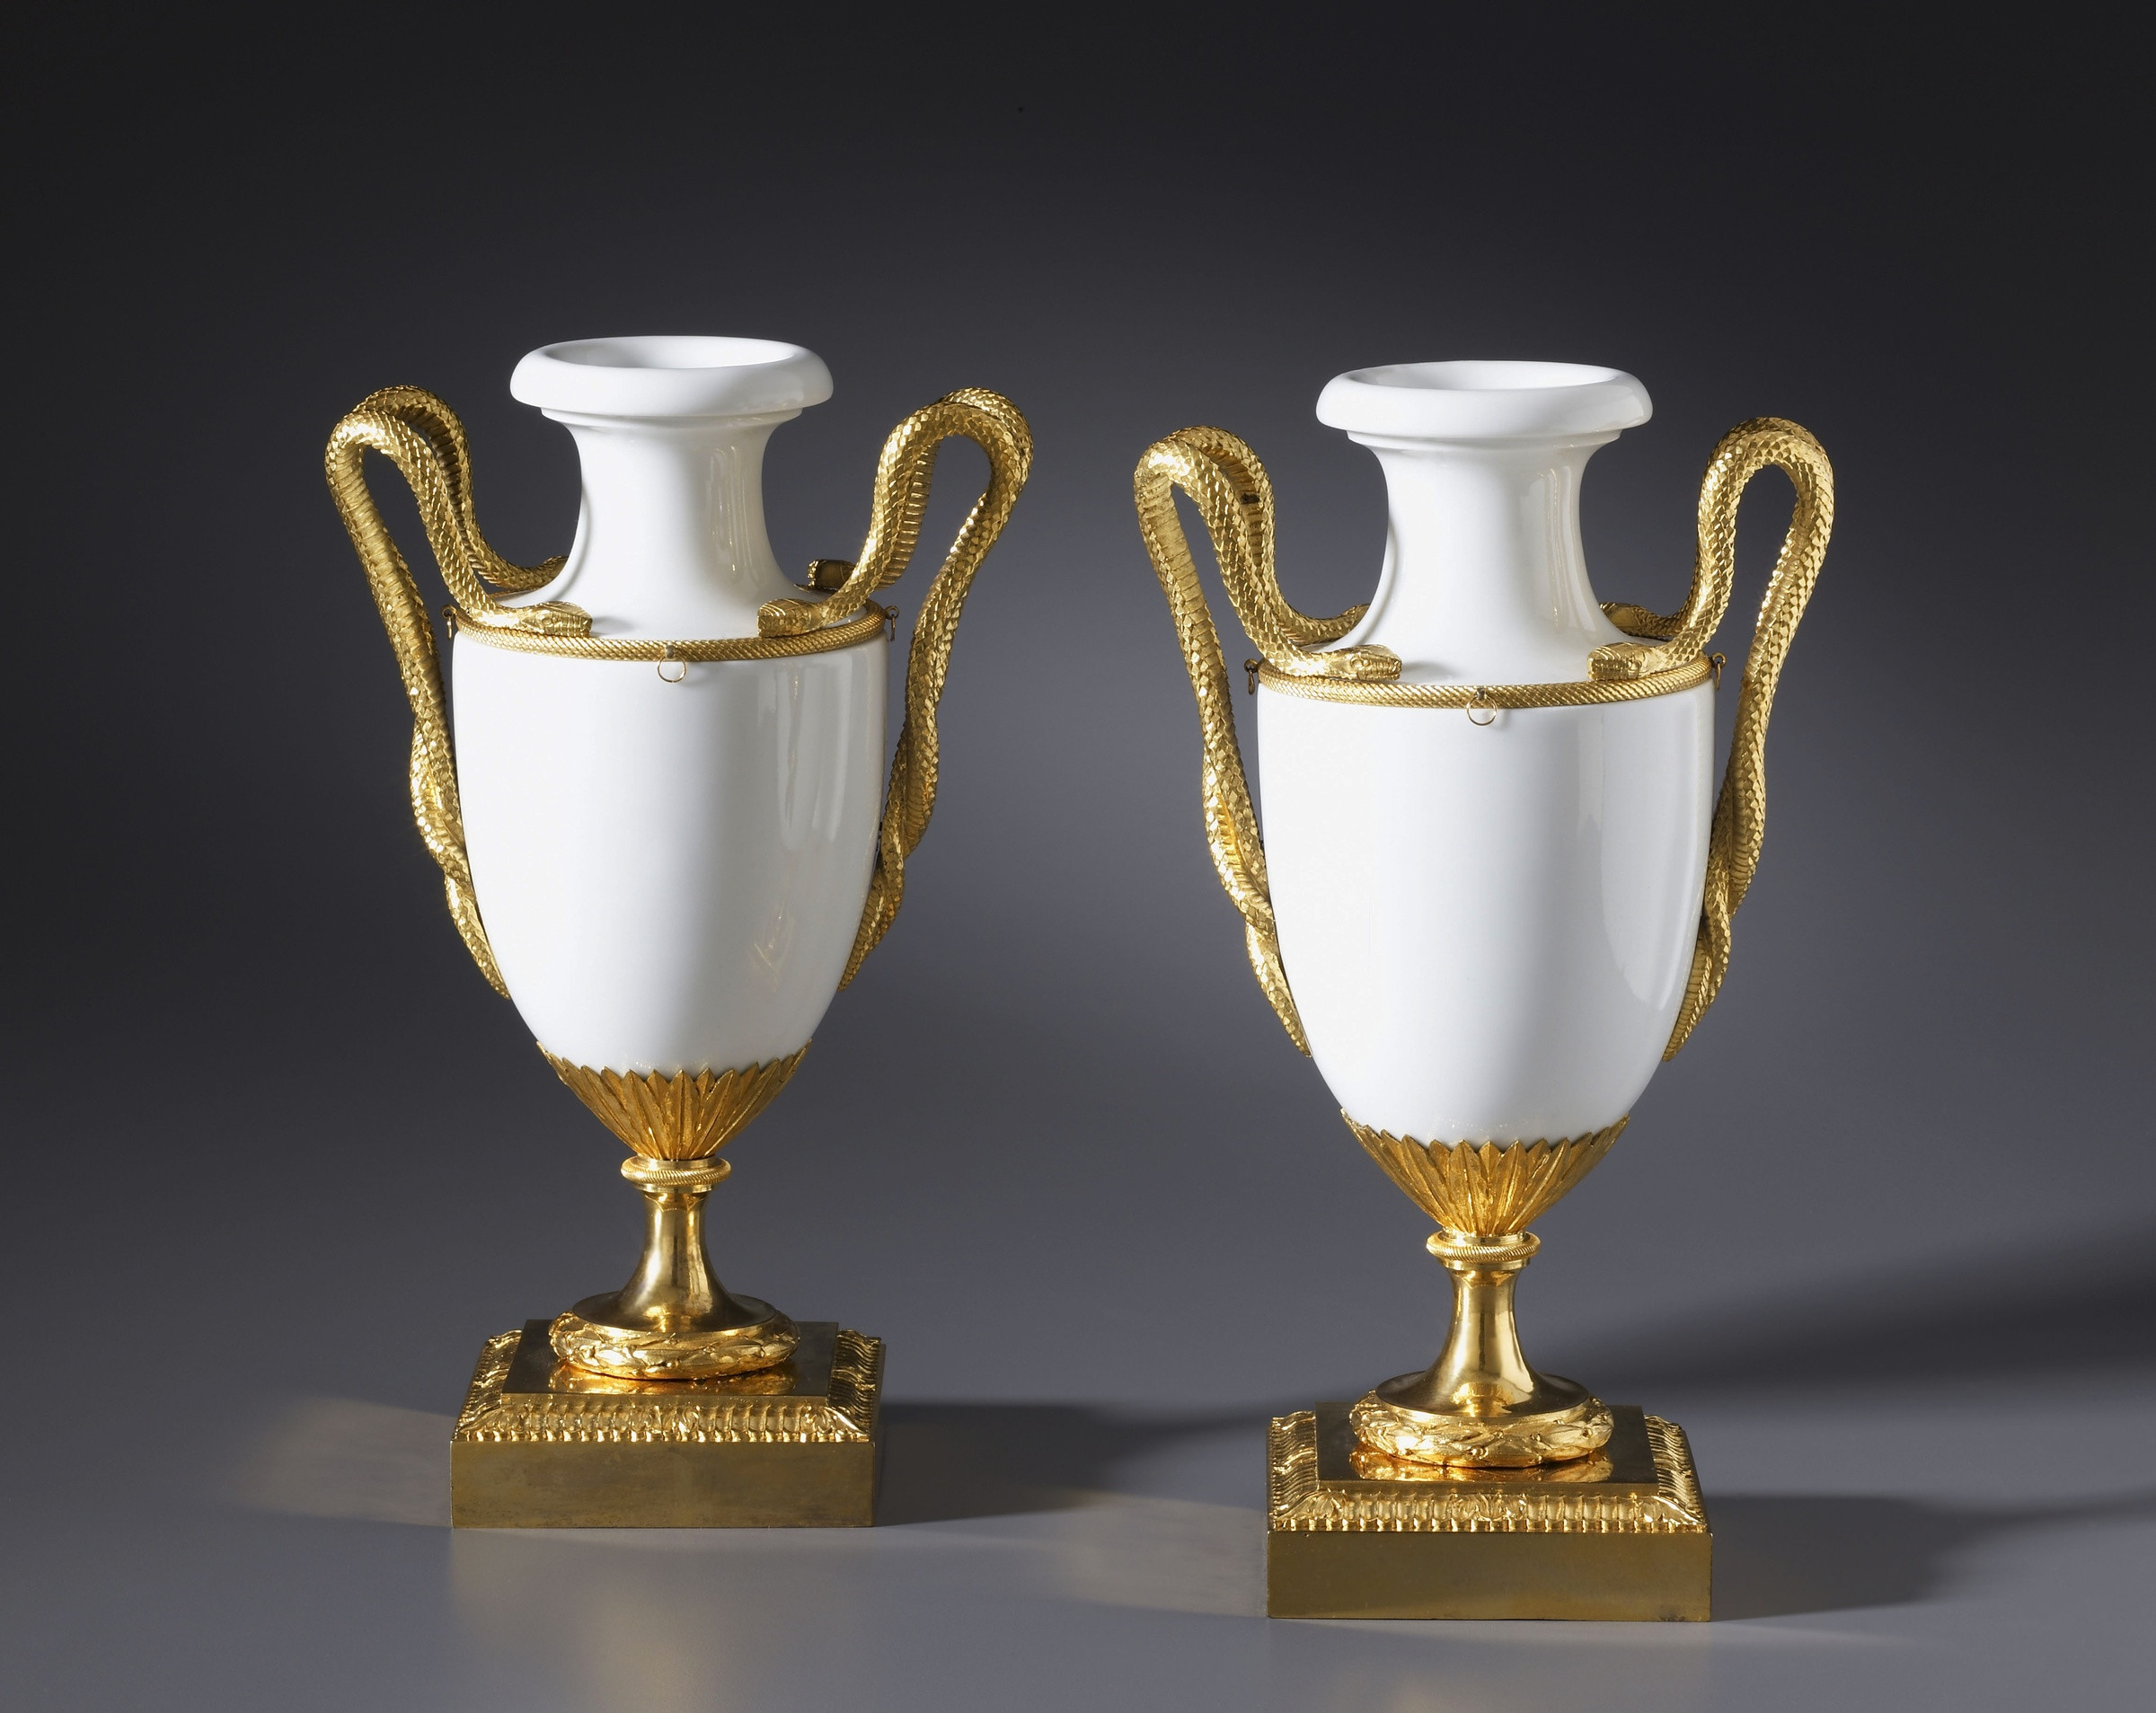 Antique Bronze Vases and Urns Of Locra A Pair Of Louis Xvi Vases by Locra Fabrique De La Courtille with Regard to A Pair Of Louis Xvi Vases by Locra Fabrique De La Courtille